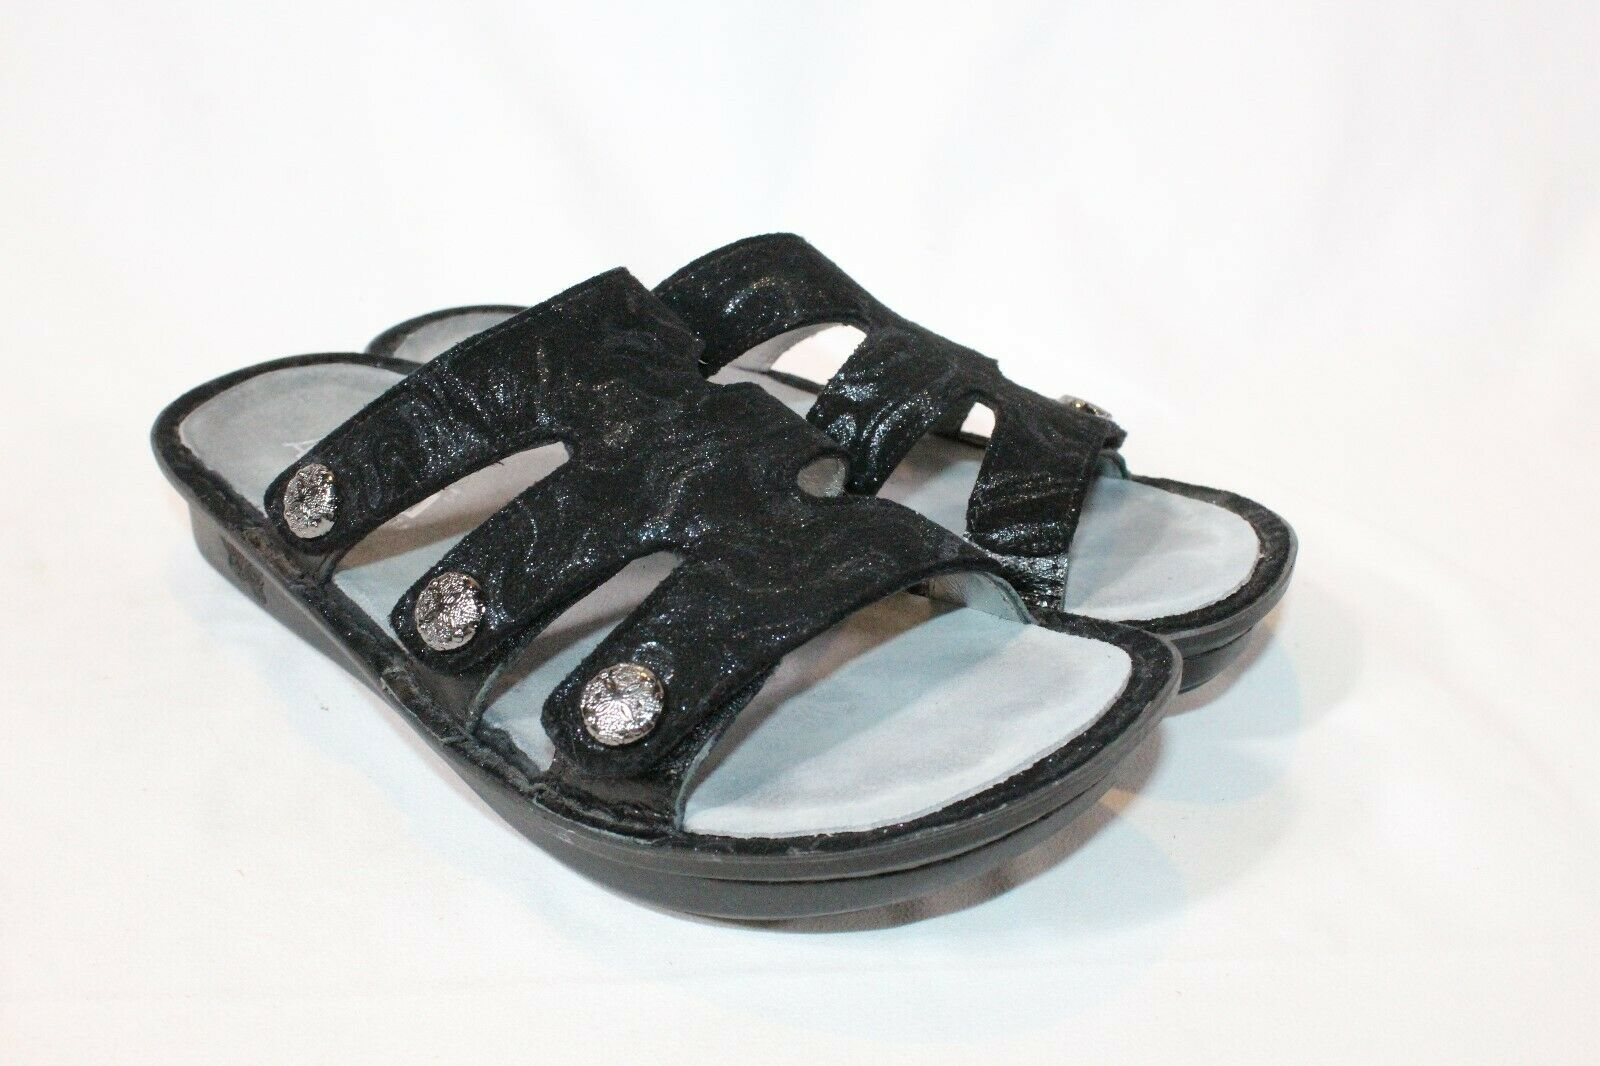 Alegria 36 6 6.5 slickery black Leather Slip on Sandals w  Strap Detail Venice